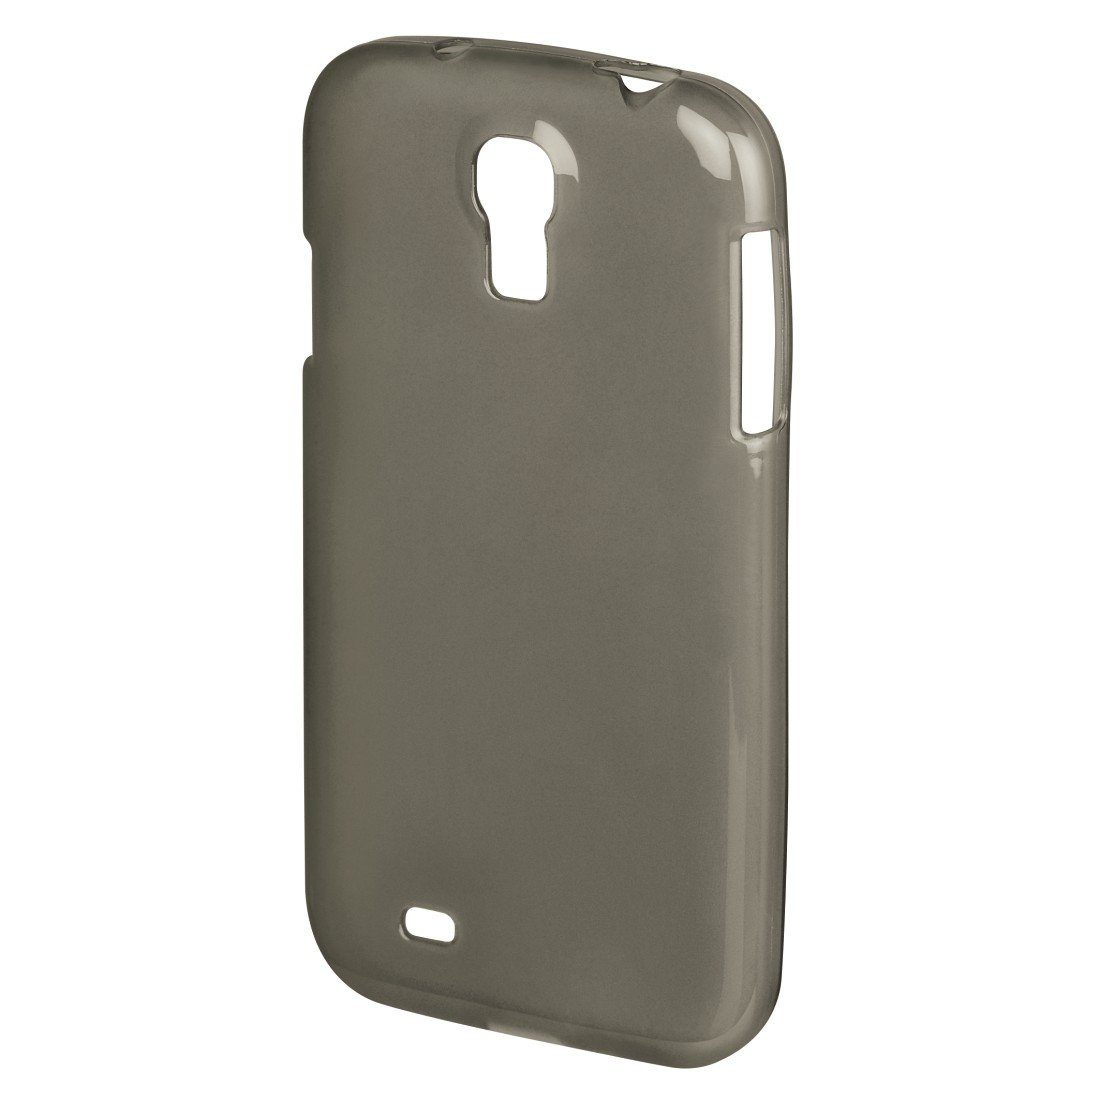 Hama Handy-Cover Crystal für Samsung Galaxy S 4 mini (LTE), Grau